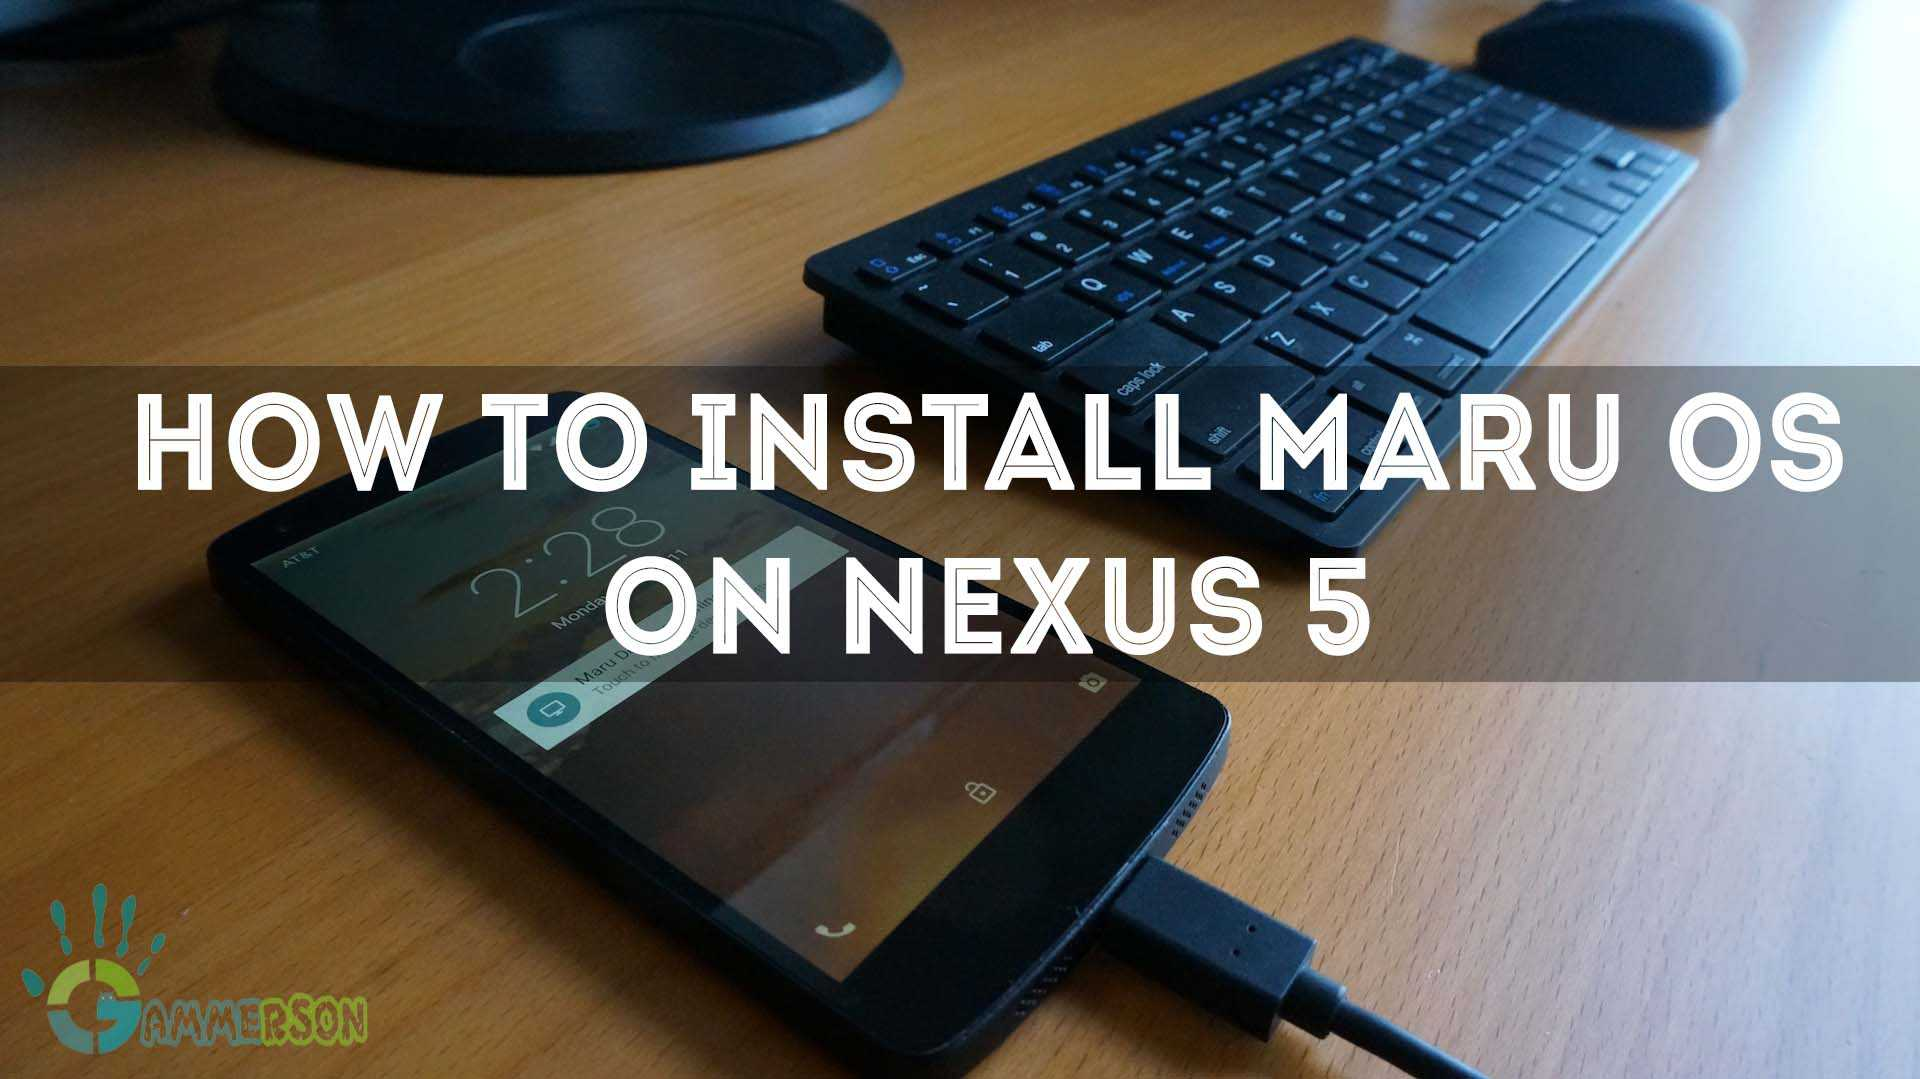 MARU OS ROM FOR NEXUS 5